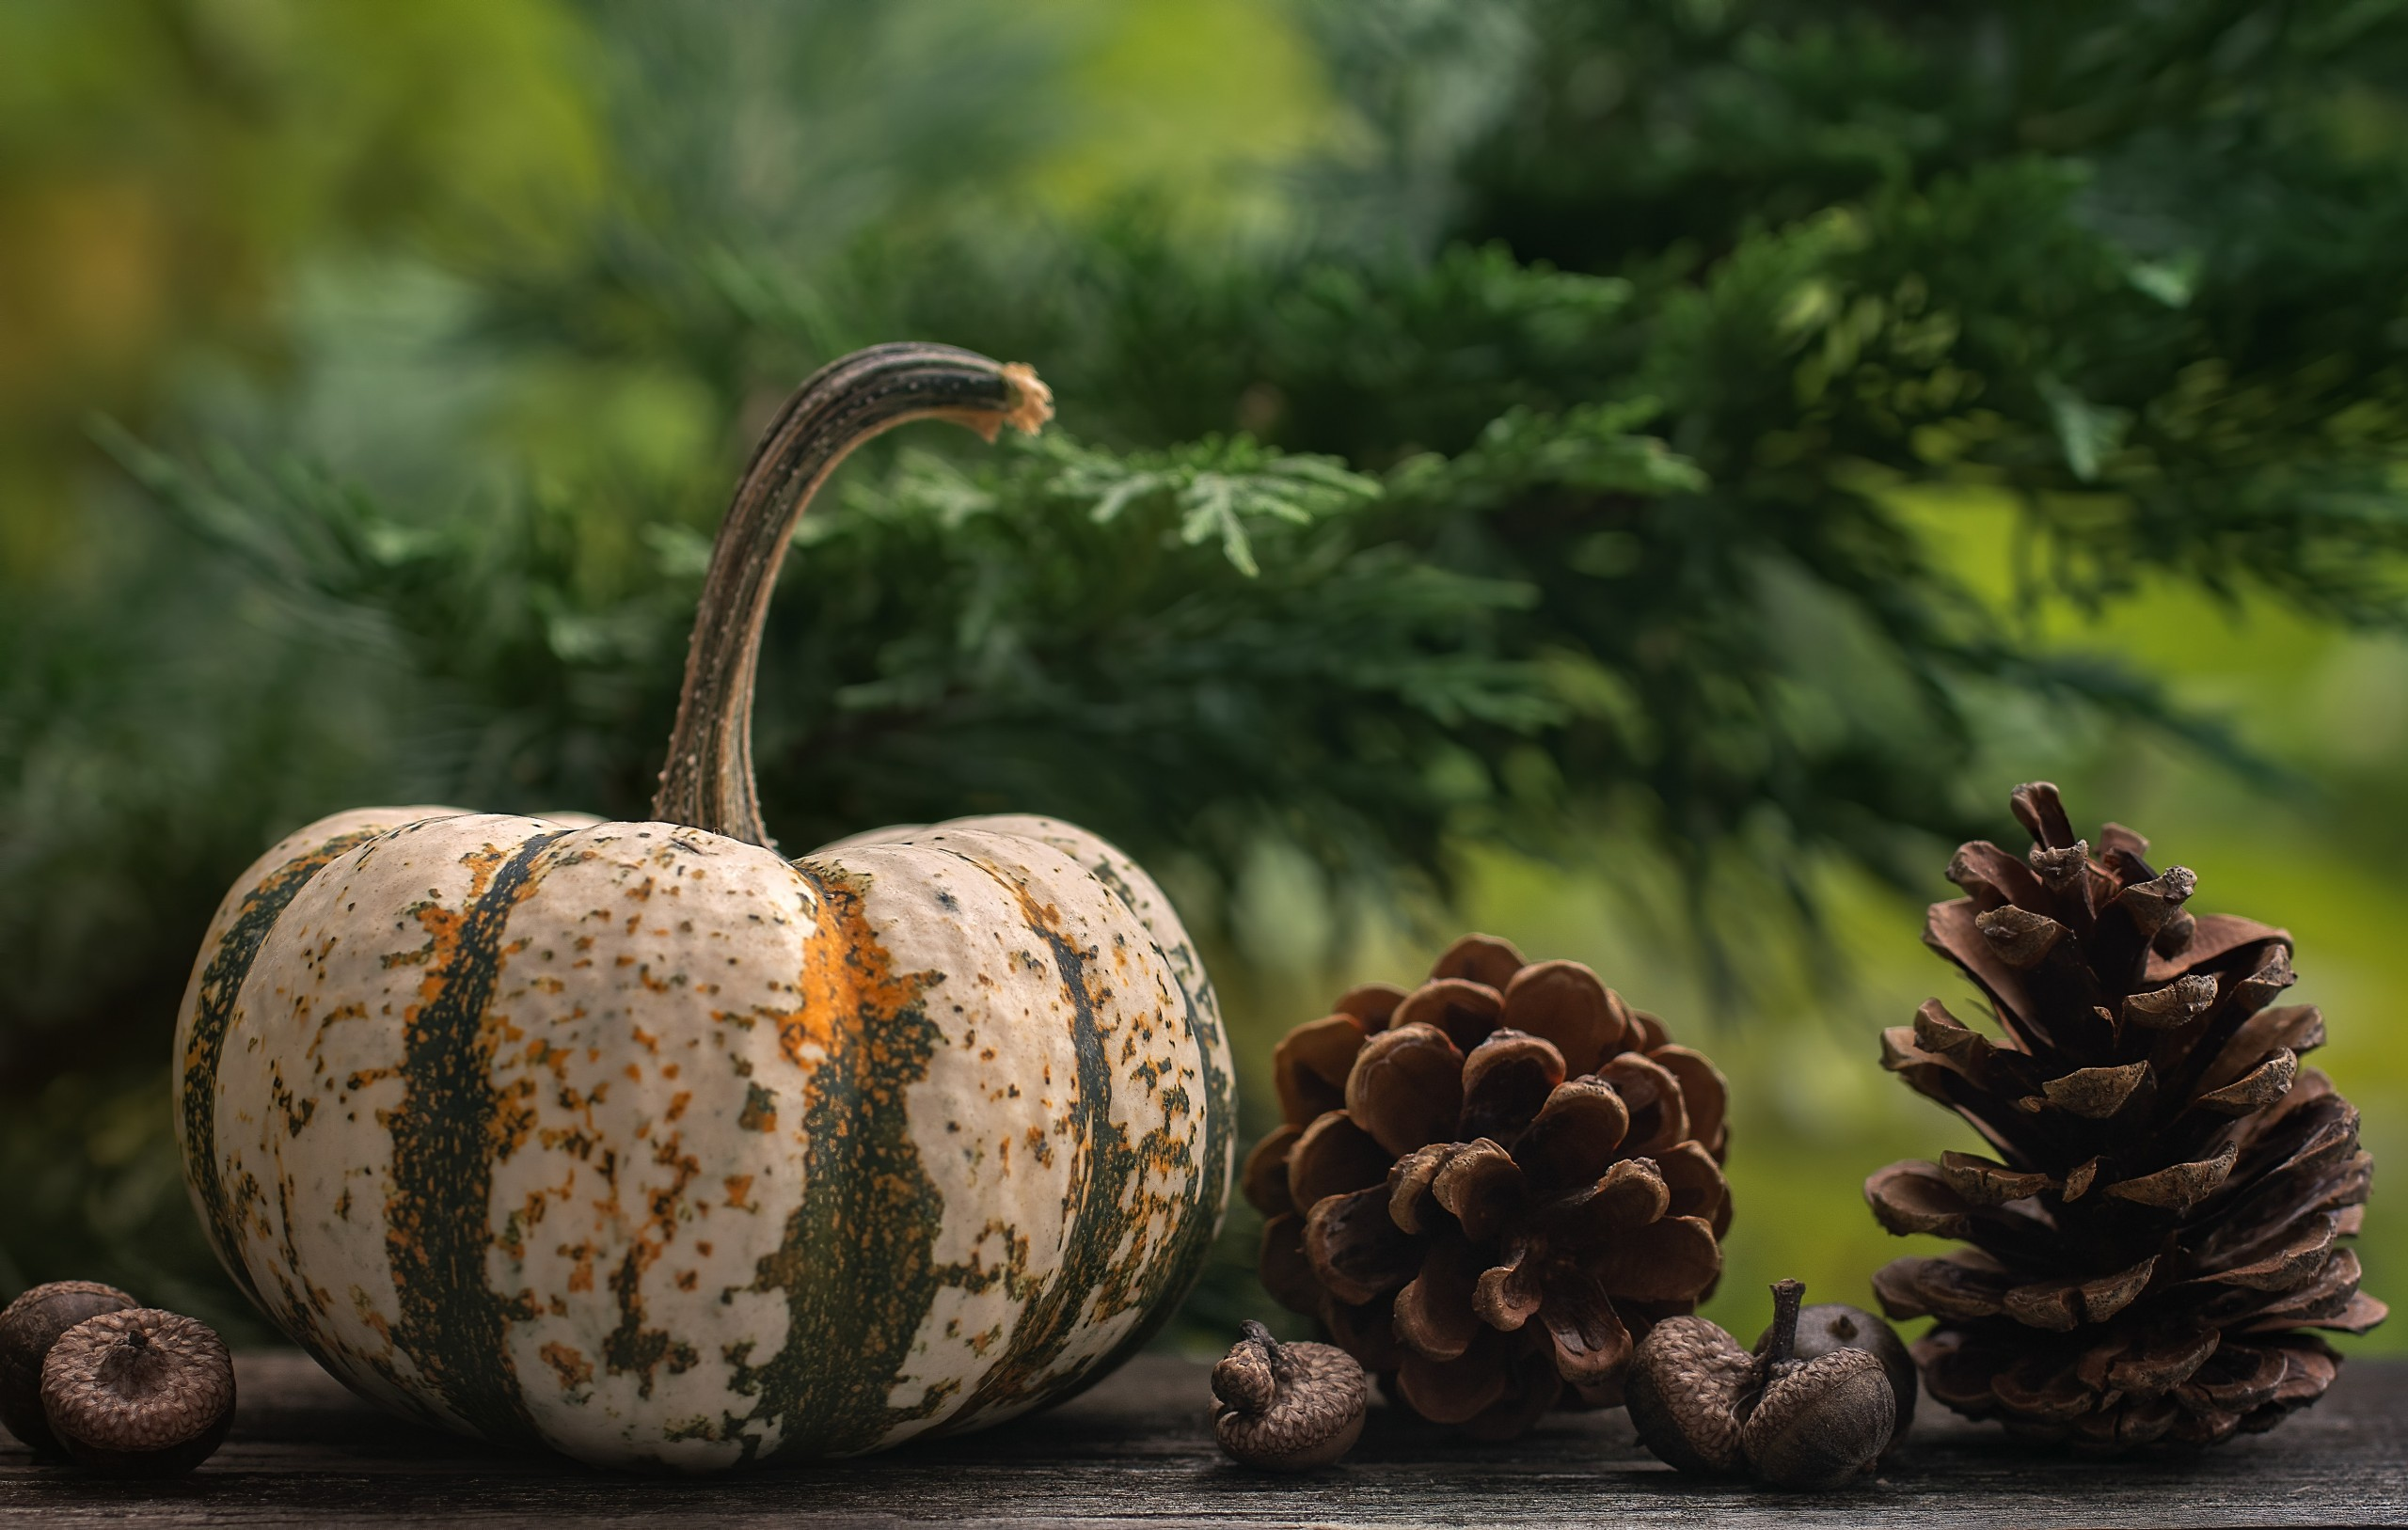 White and green striped mini pumpkin next to pine cones with pine tree in background.